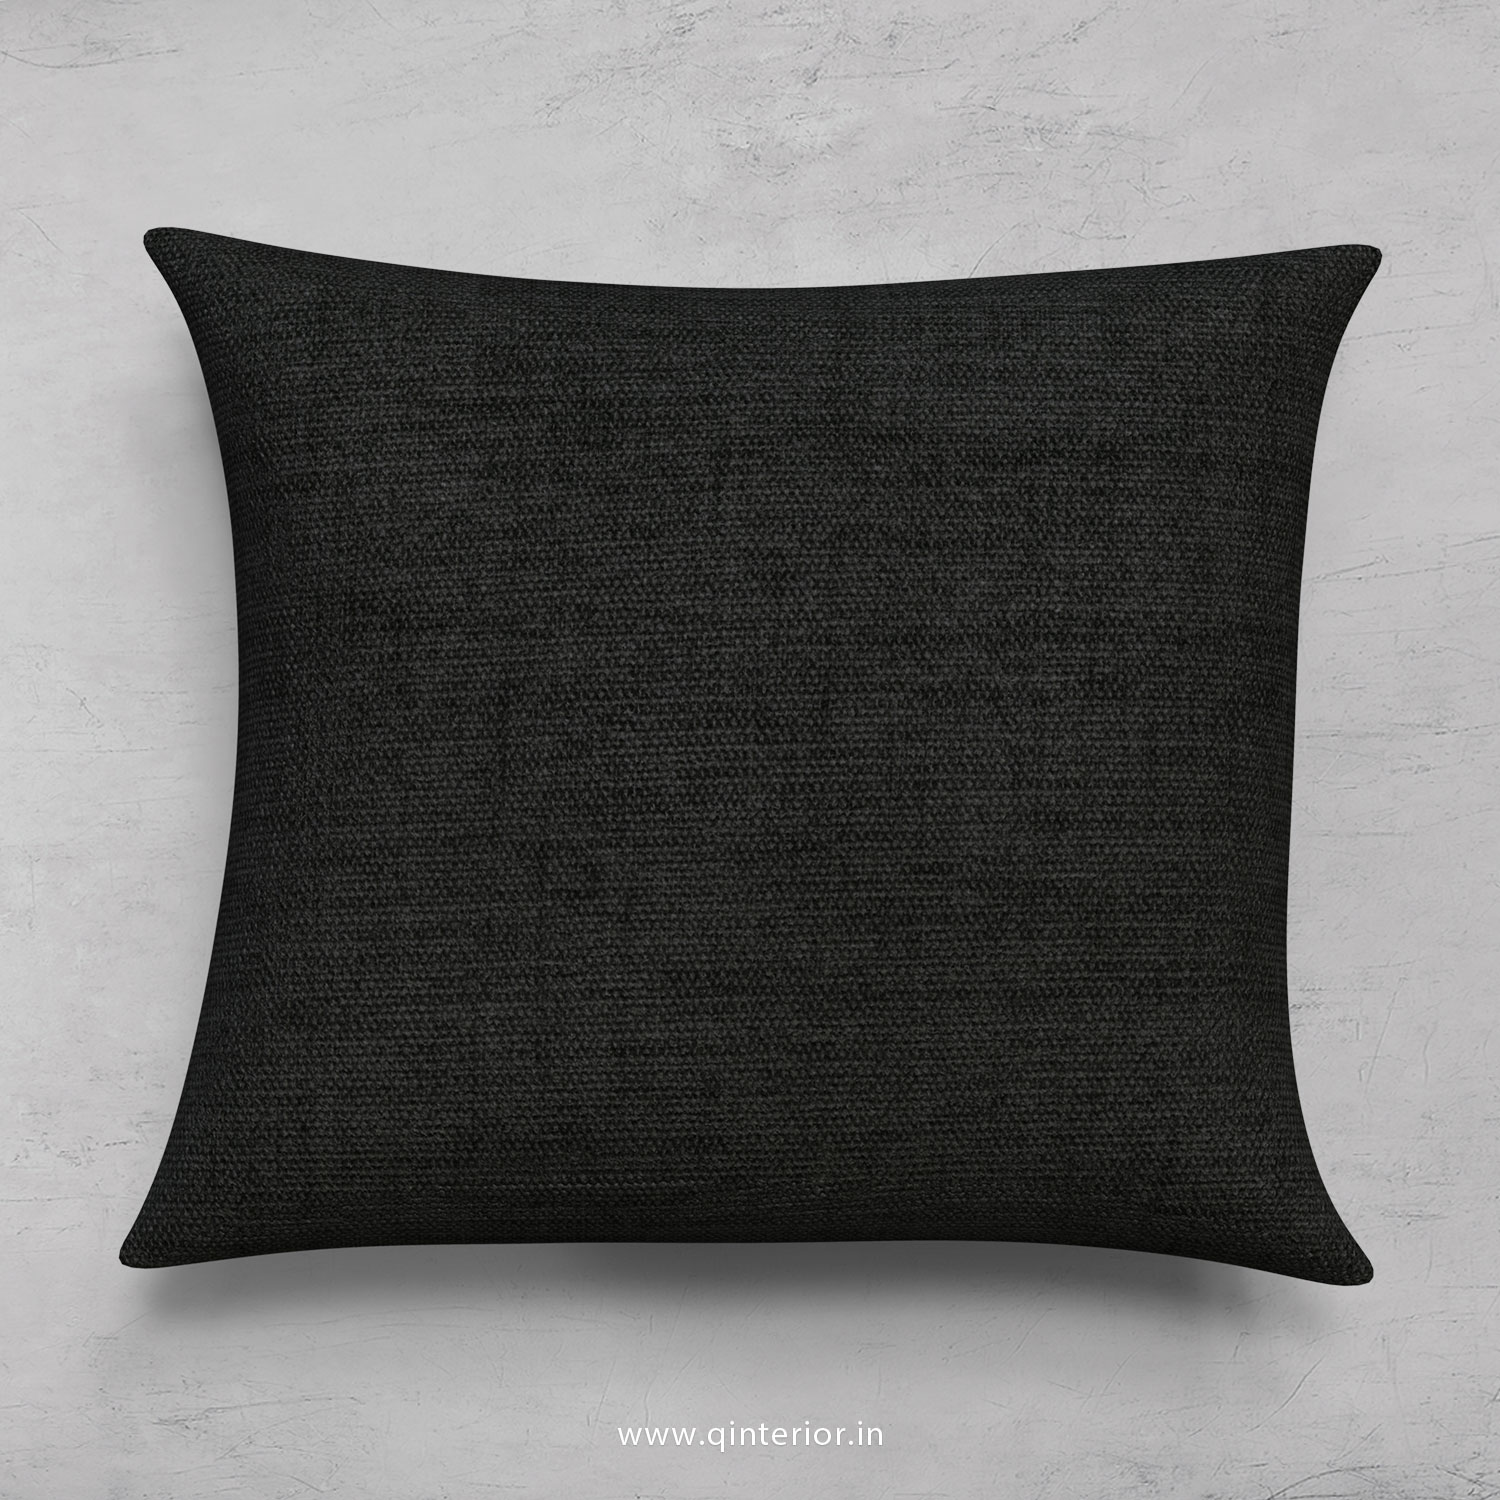 Black Jaquard Cushion With Cushion Cover - CUS001 JQ